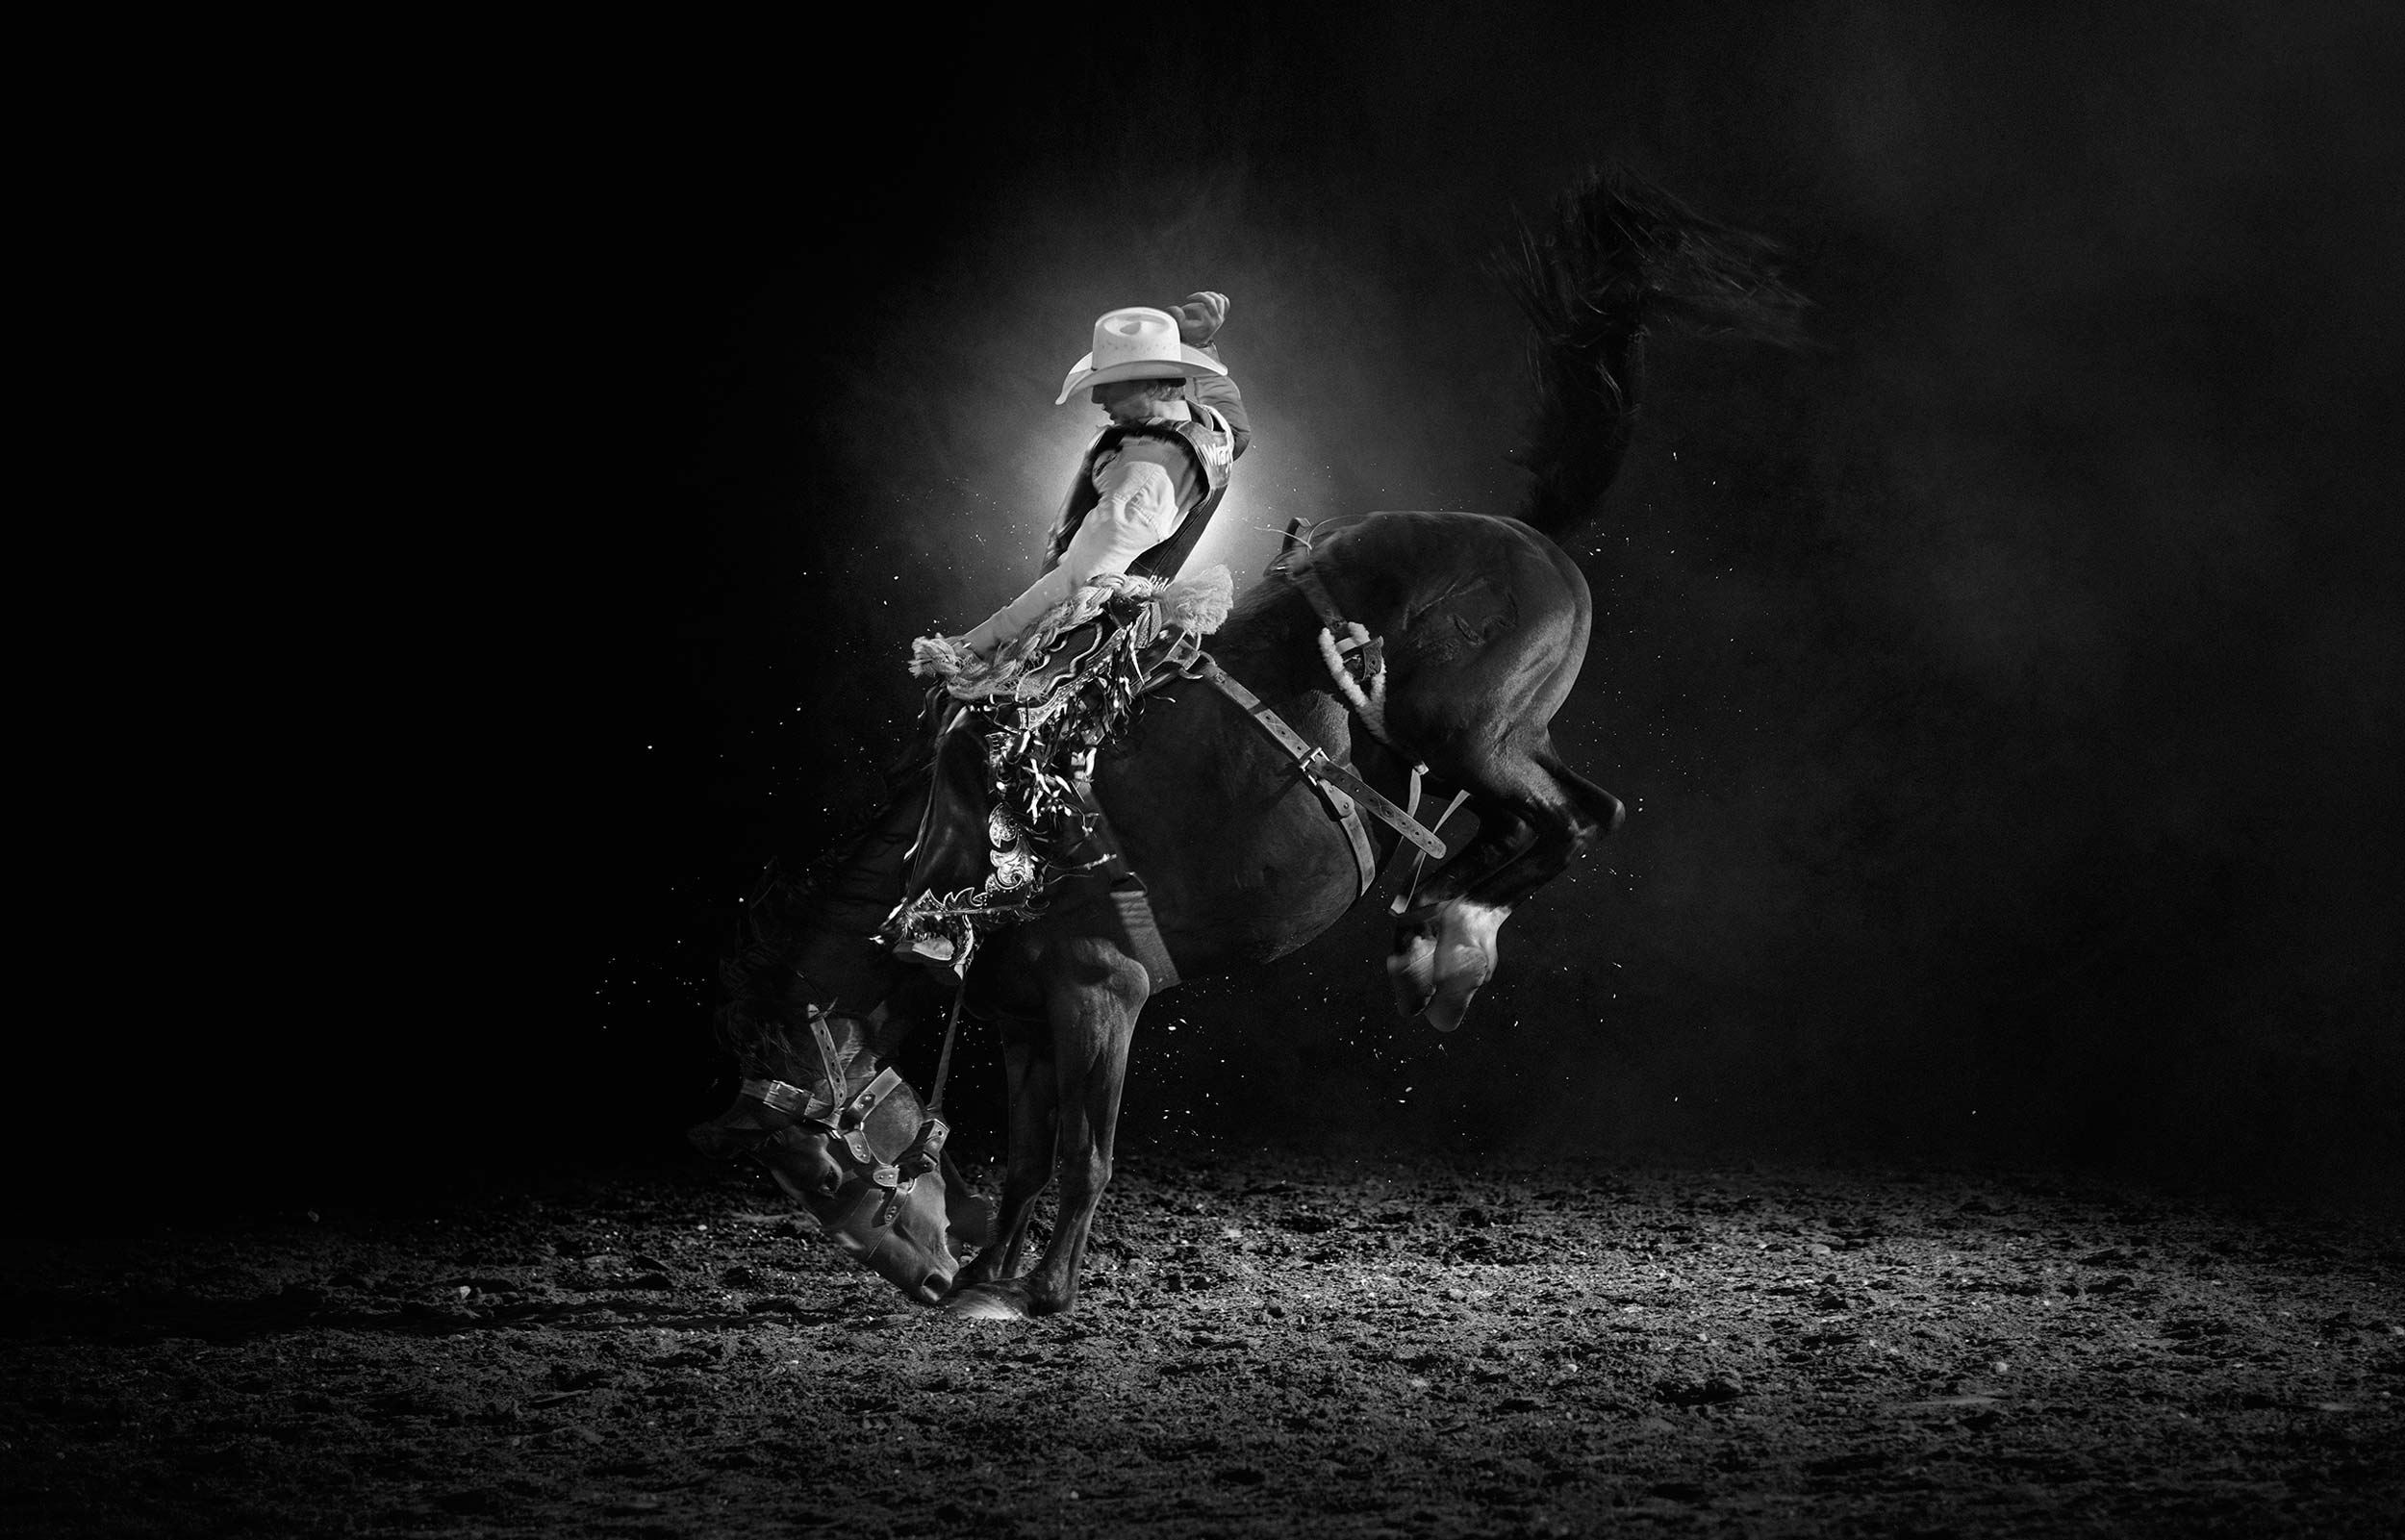 012_RODEO_11003a